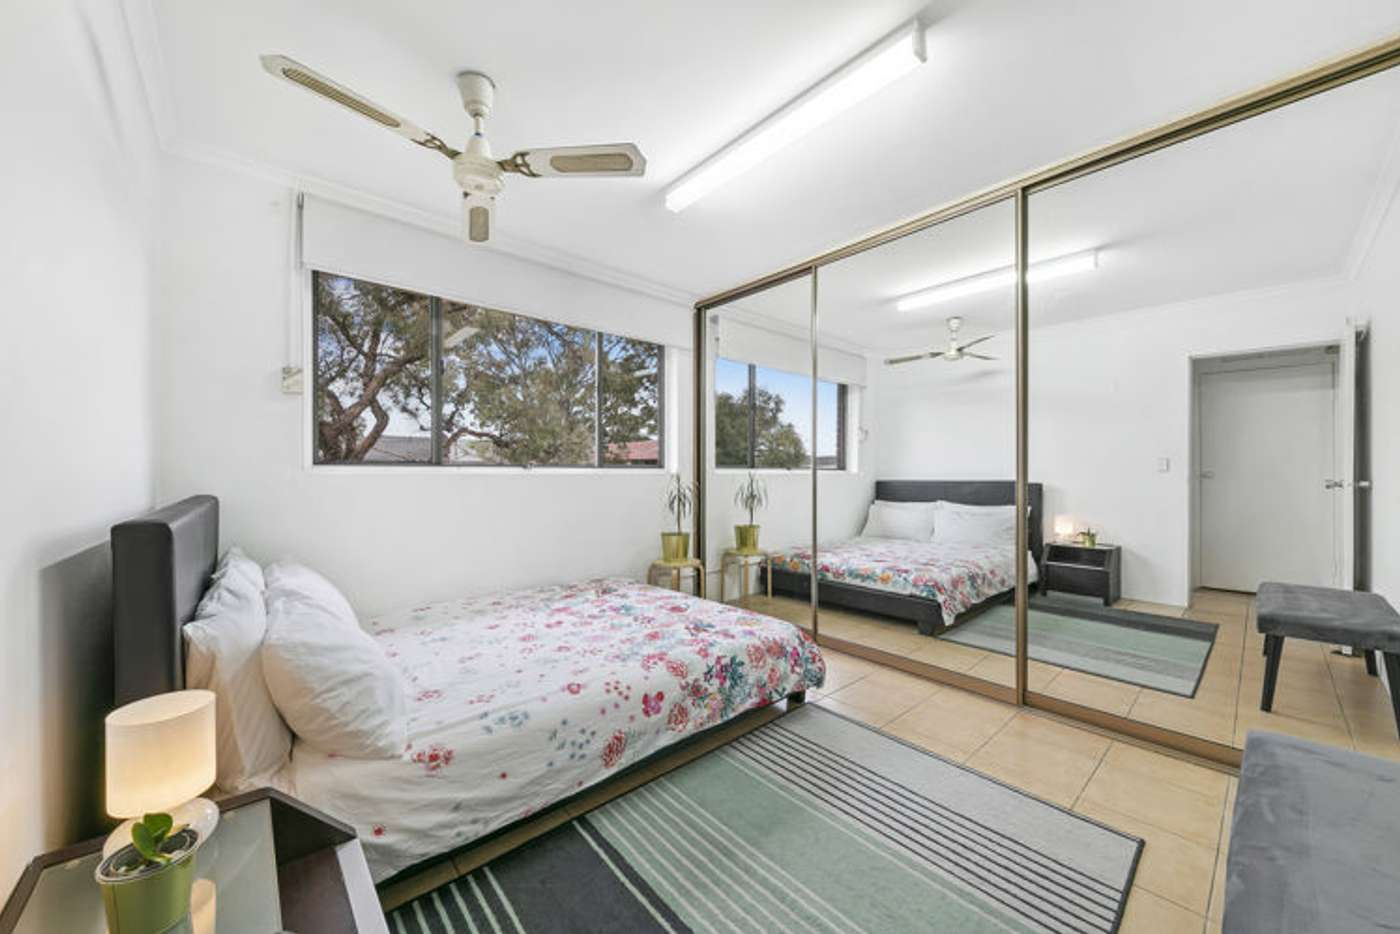 Fifth view of Homely unit listing, 12/14-16 The Trongate, Granville NSW 2142